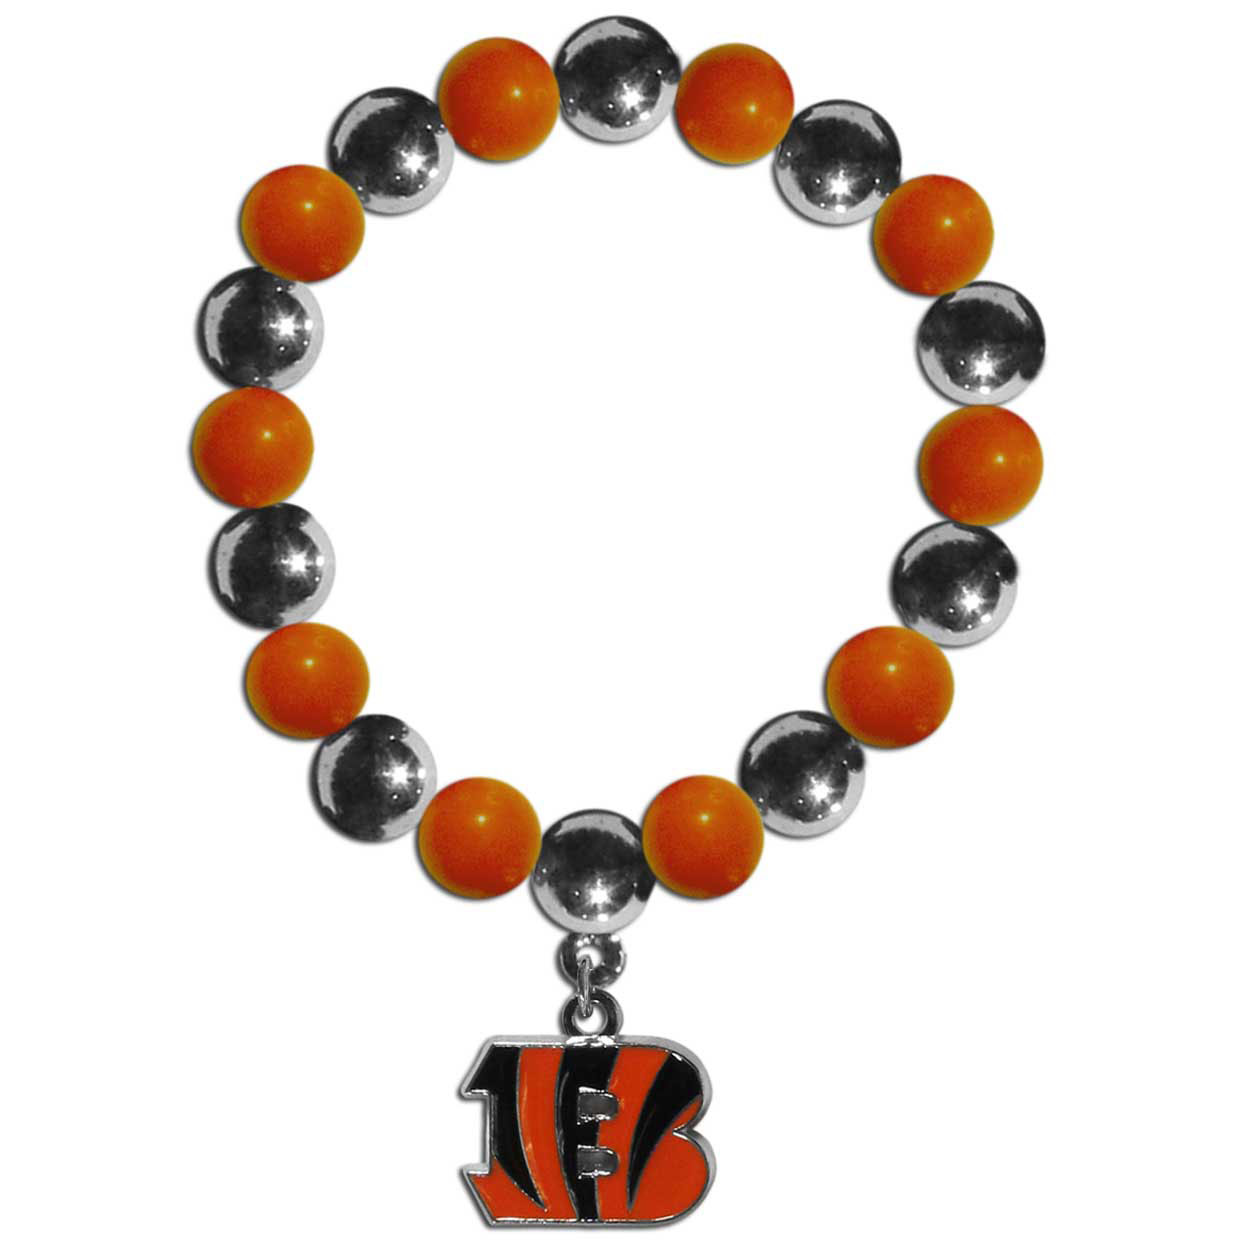 Cincinnati Bengals Chrome Bead Bracelet - Flash your Cincinnati Bengals spirit with this bright stretch bracelet. This new bracelet features alternating charm & team beads on stretch cord with a nickel-free enameled chrome team charm. This bracelet adds the perfect pop of color to your game day accessories.